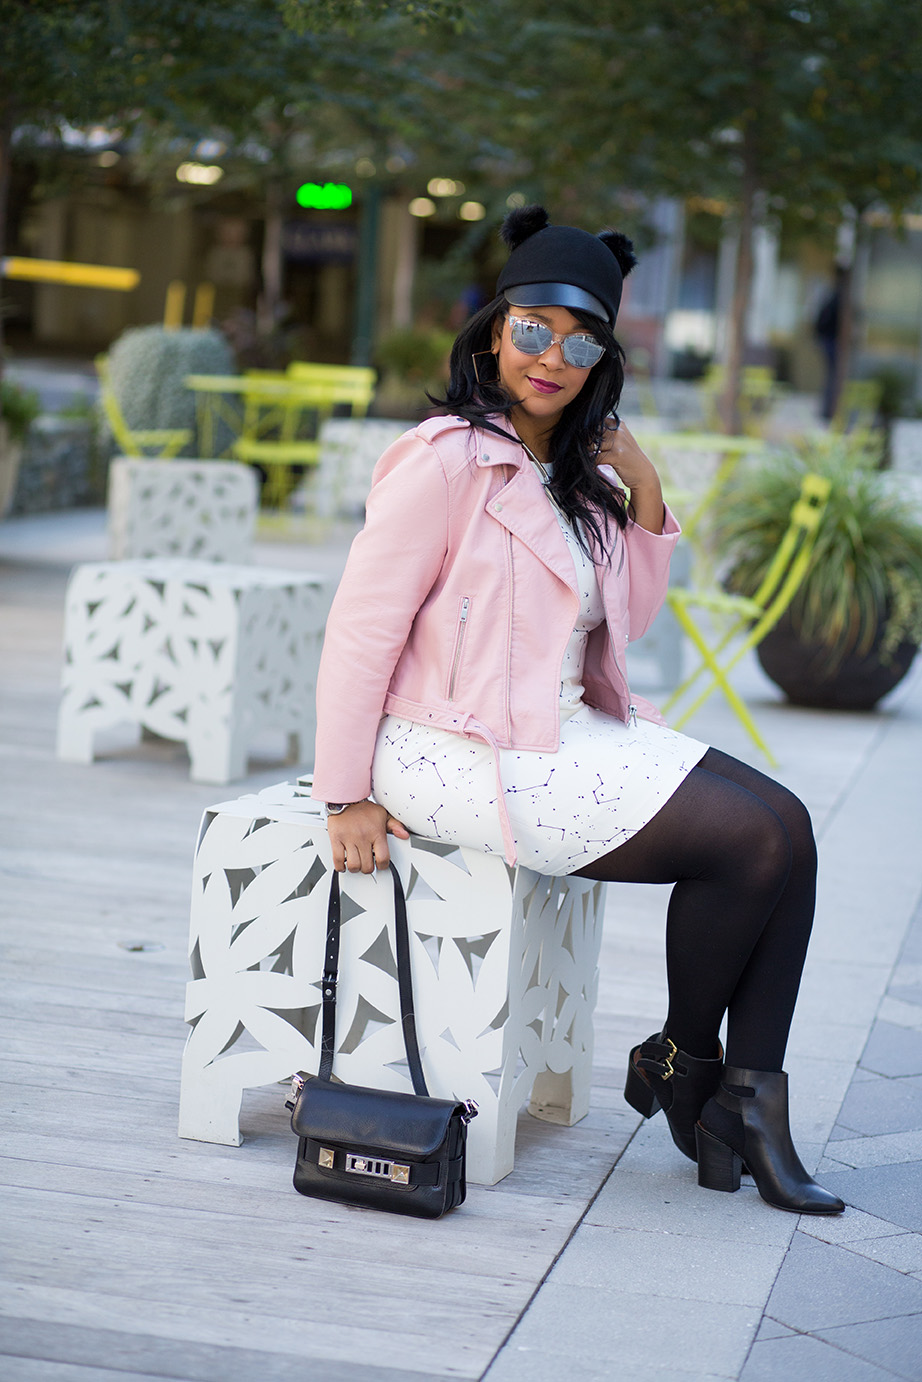 For the Love of Moto Jackets: Here's what I'm wearing: Mirrored sunglasses, H&M Wool Hat with faux fur bunny ears, Zara Constellation Print Dress, Zara Pink Moto Jacket, Hue opaque tights, Shoemint Slingback Booties, Proenza Schouler PS11 bag